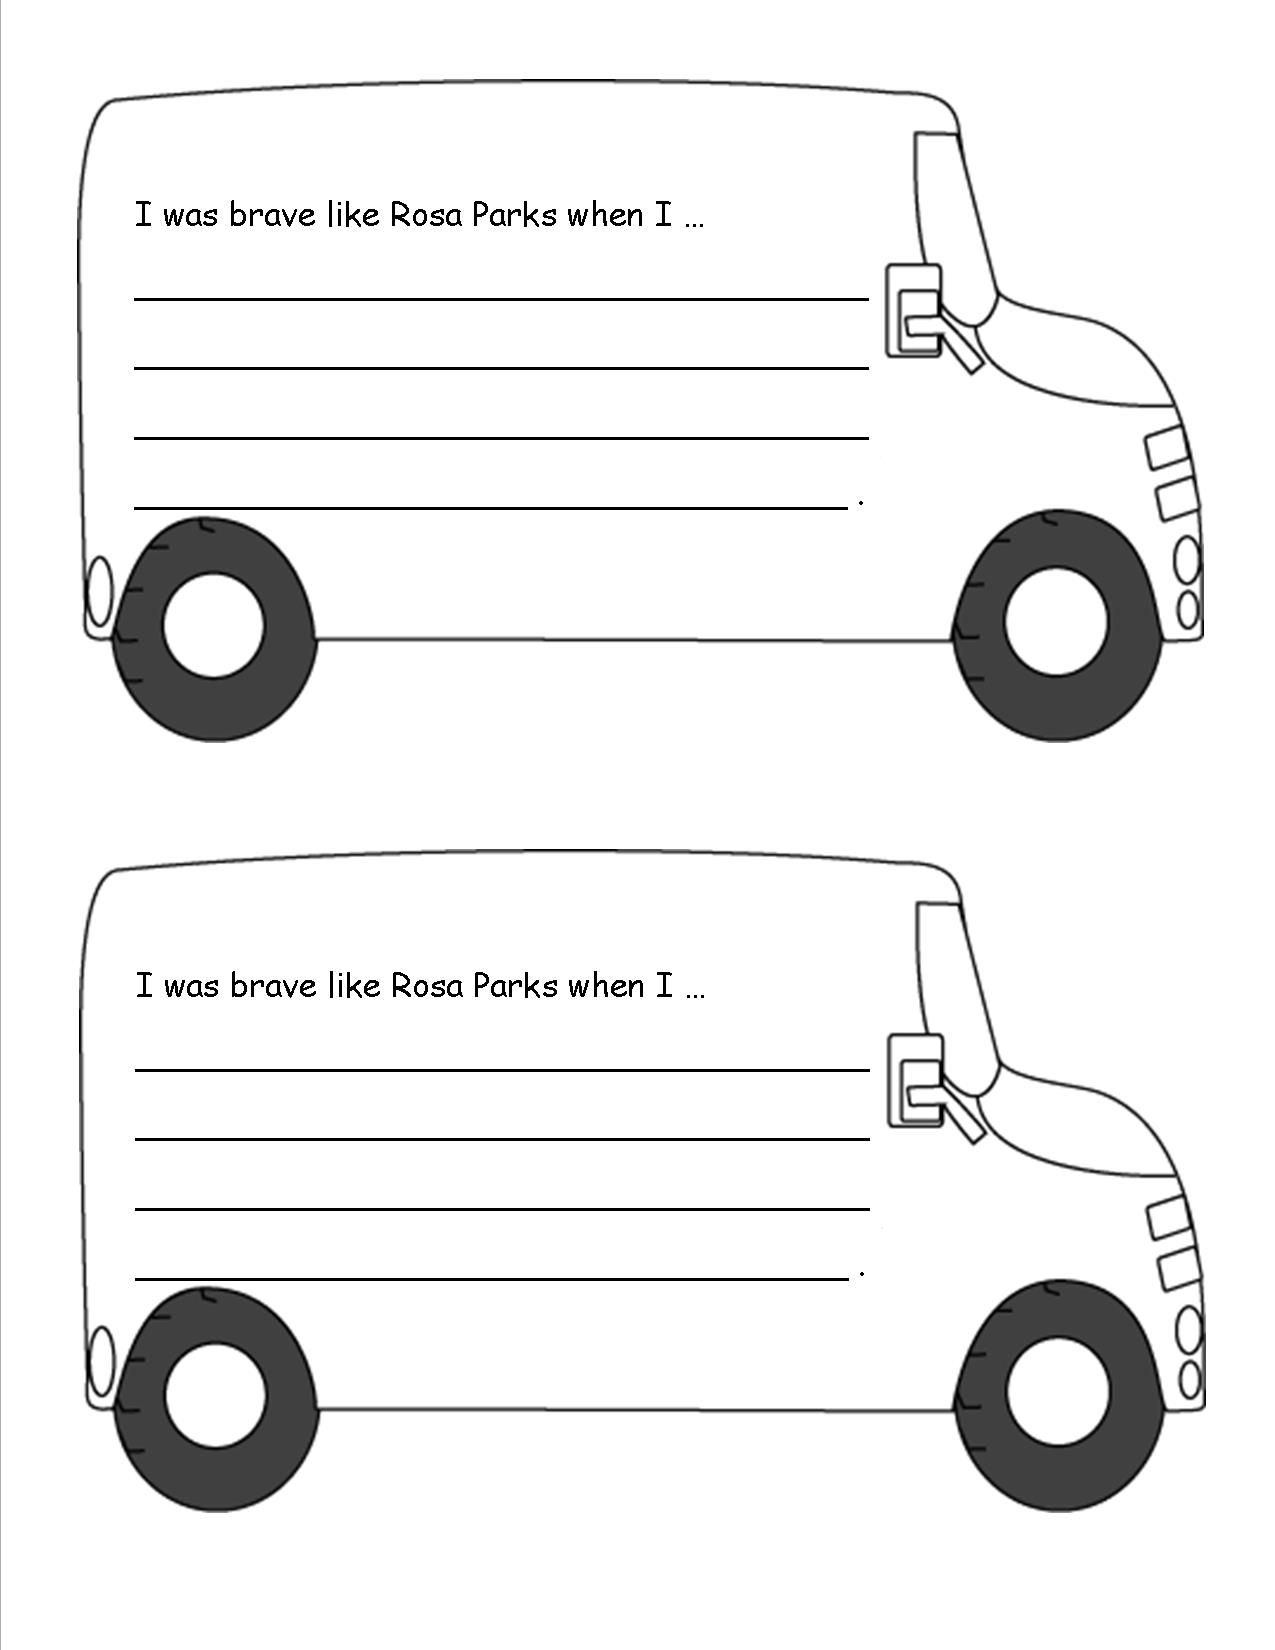 small resolution of rosa parks worksheet this activity is great for students learning about rosa parks during black history month they can relate to rosa parks by explaining